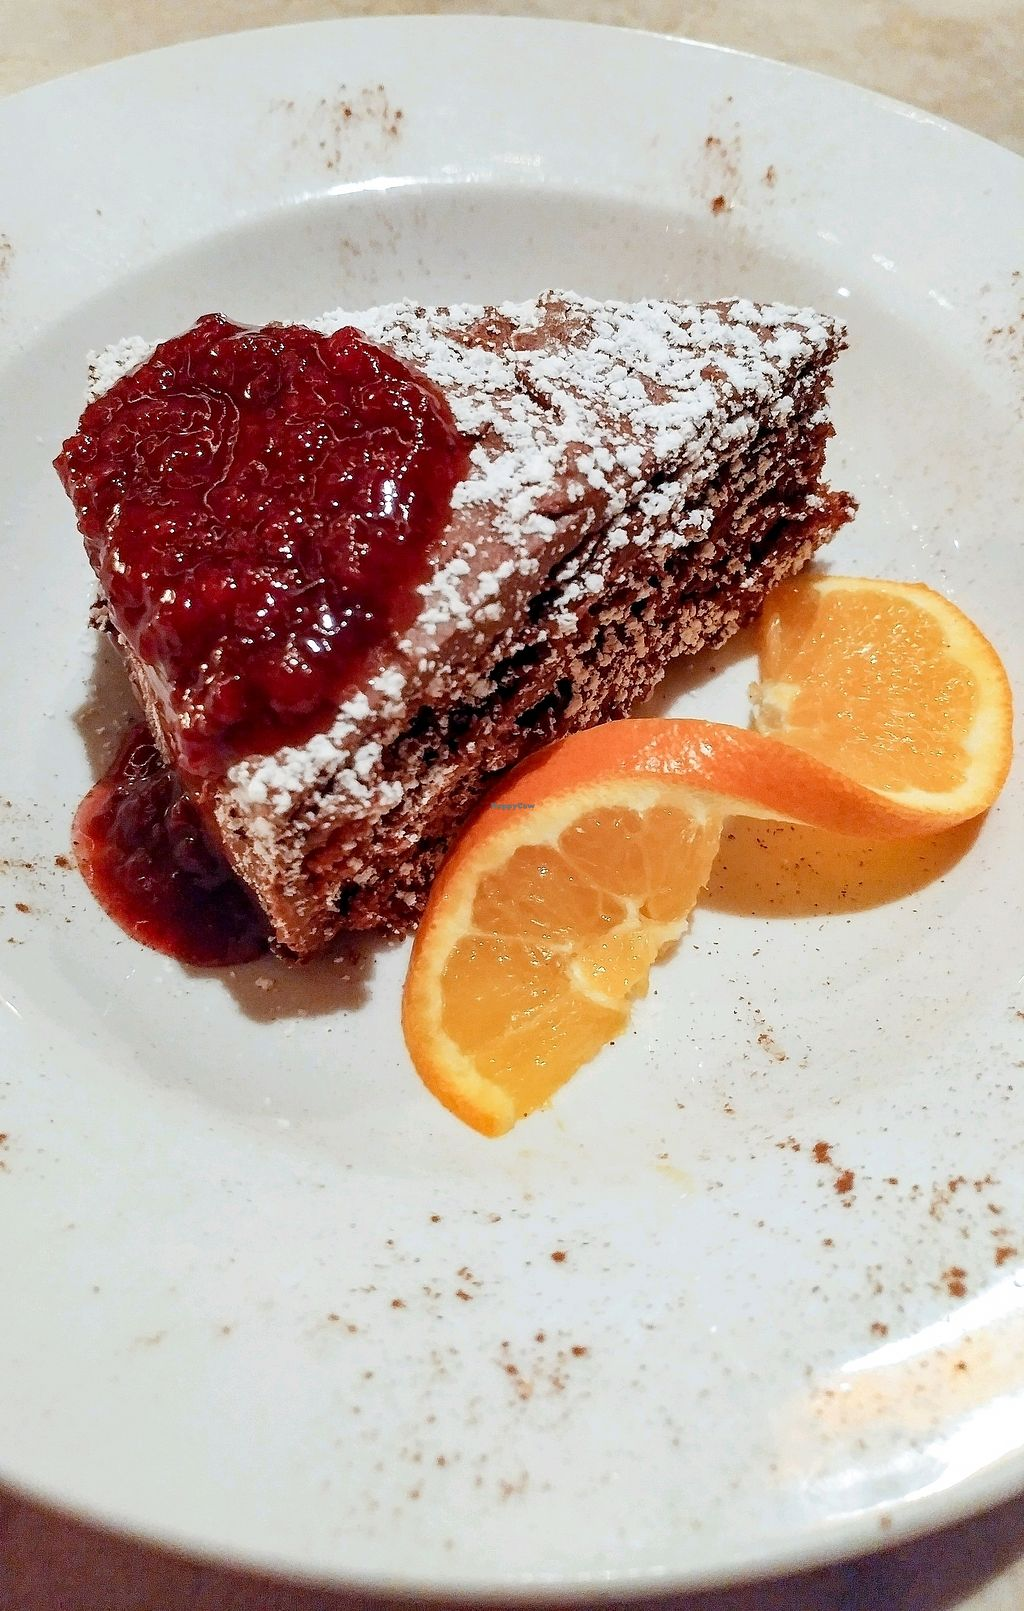 """Photo of The Press Restaurant  by <a href=""""/members/profile/Passittowill"""">Passittowill</a> <br/>Vegan Chocolate Cake <br/> April 15, 2018  - <a href='/contact/abuse/image/25342/386039'>Report</a>"""